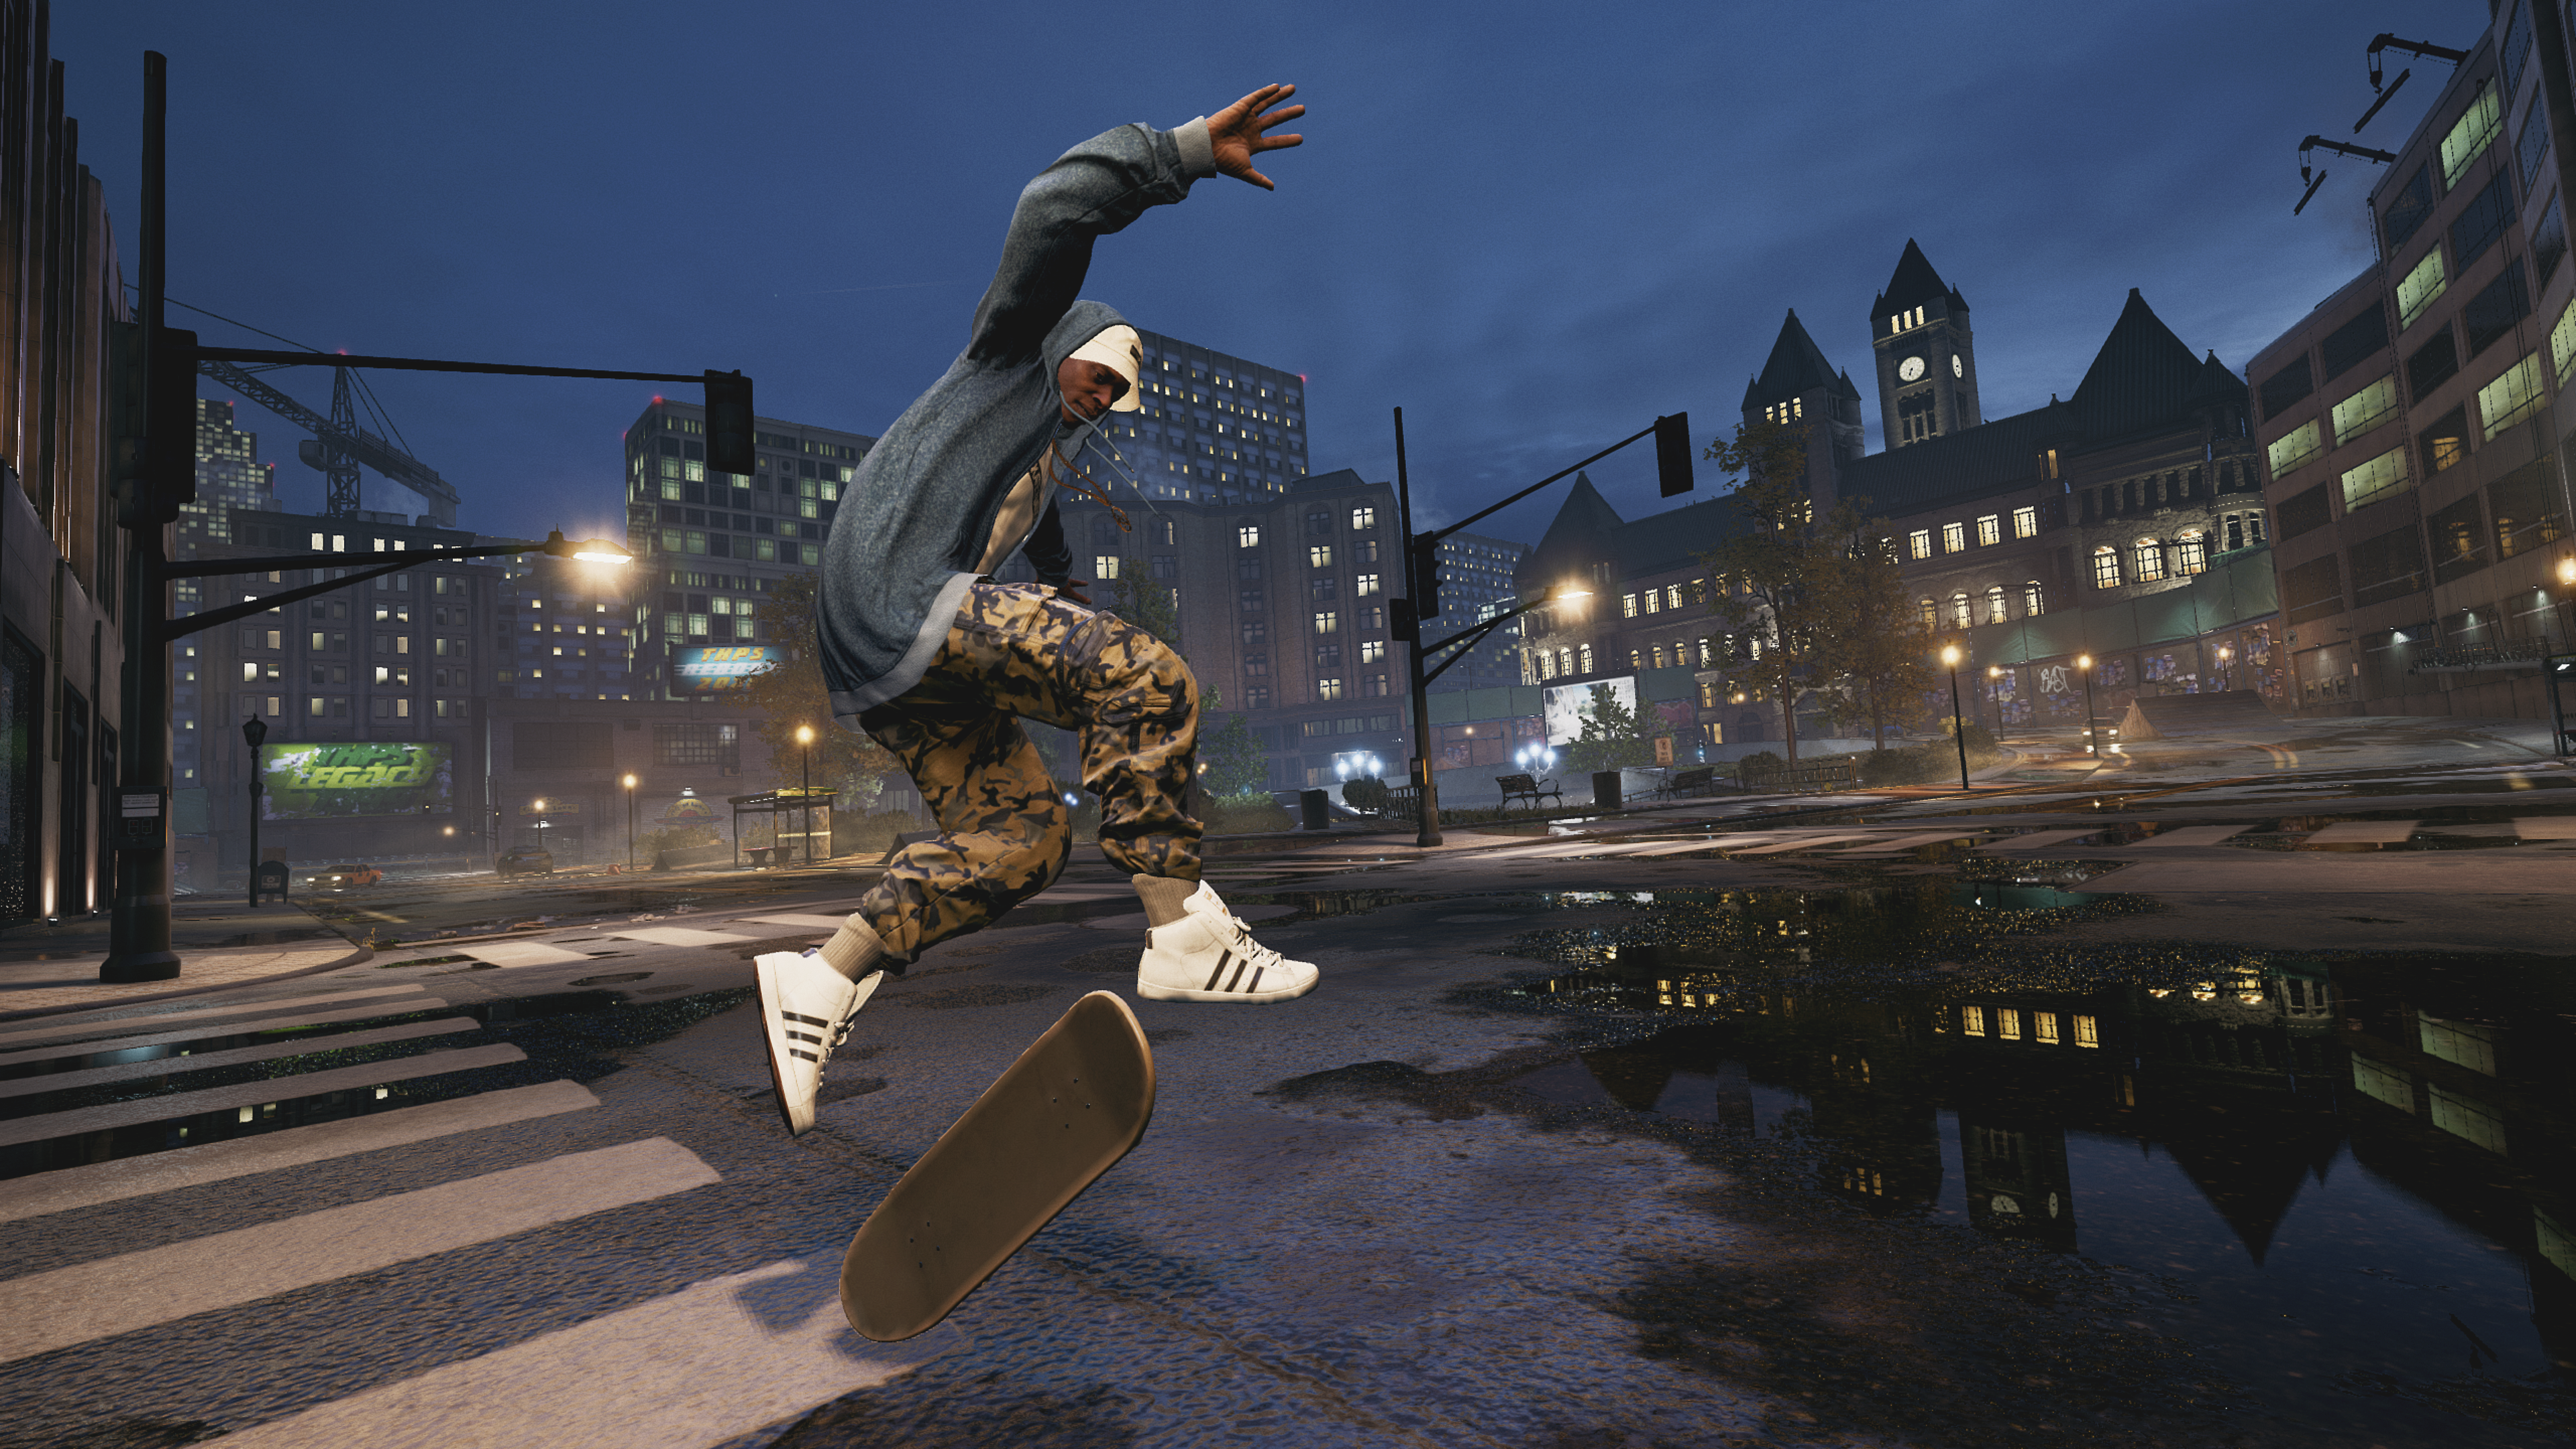 Tony Hawk's Pro Skater 1 + 2 - Gallery Screenshot 3